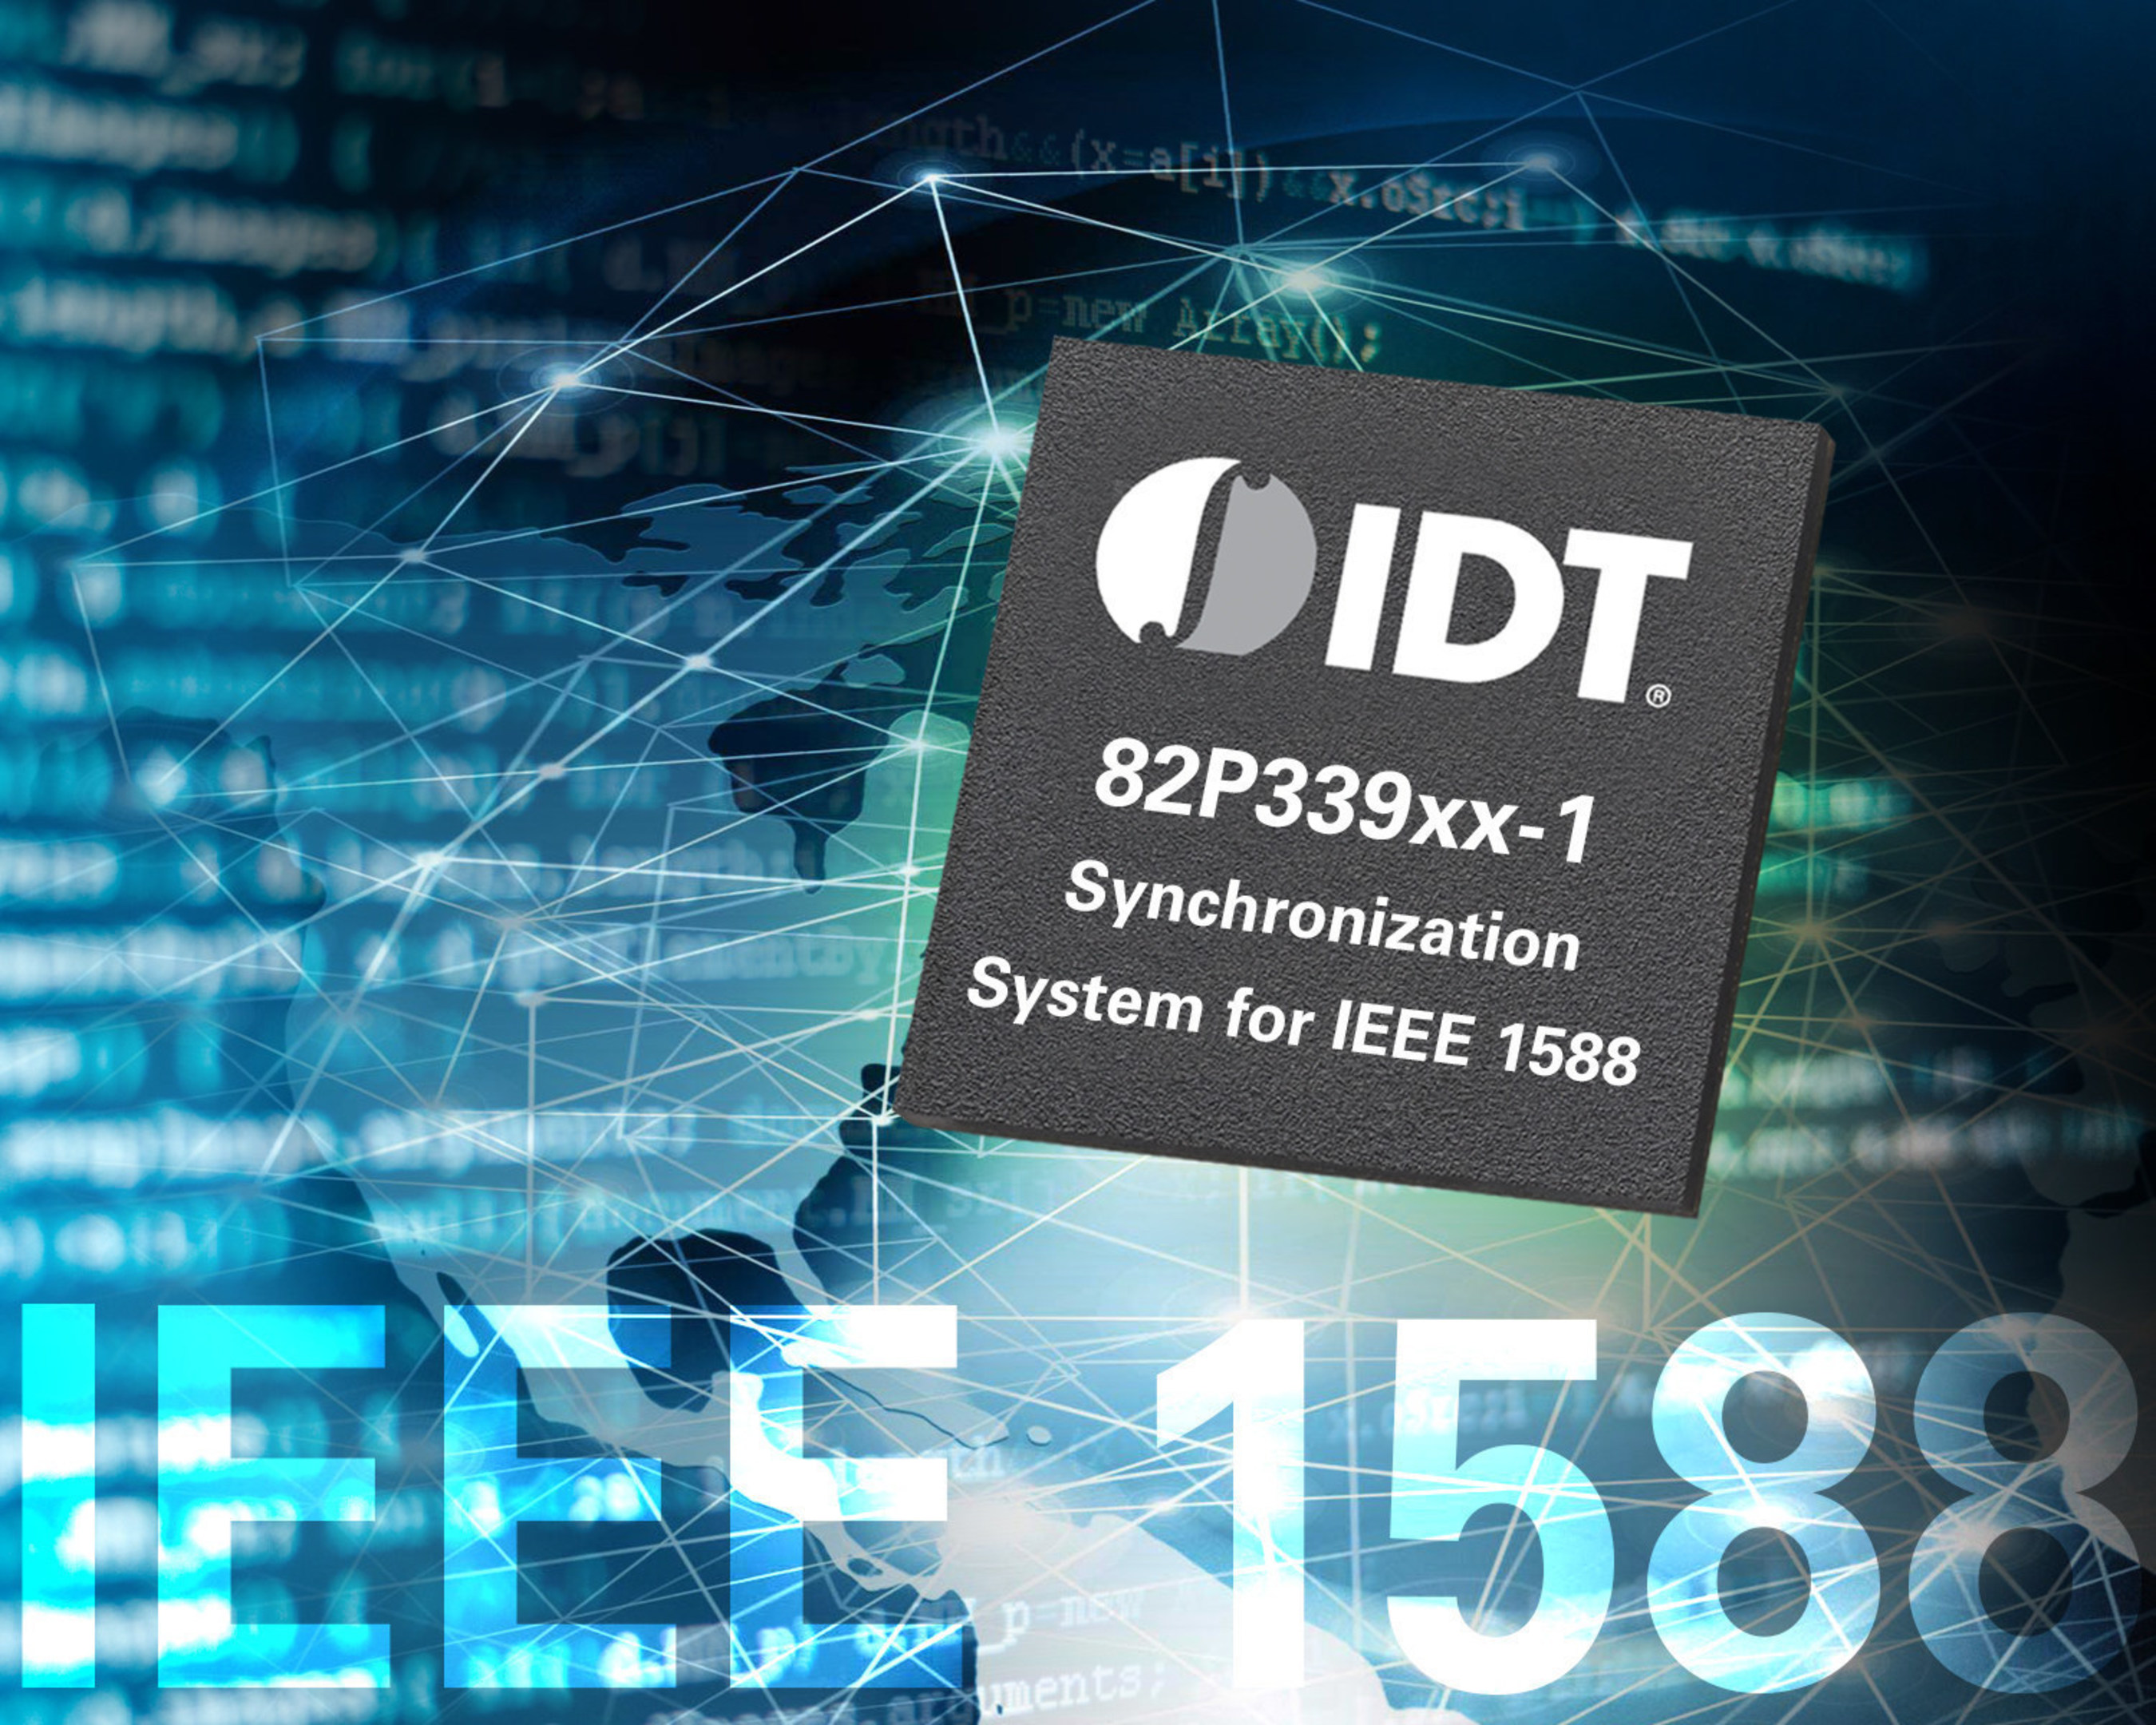 IDT's New IEEE 1588 Hardware and Software Solution Eases Compliance with Latest Network Synchronization Standards